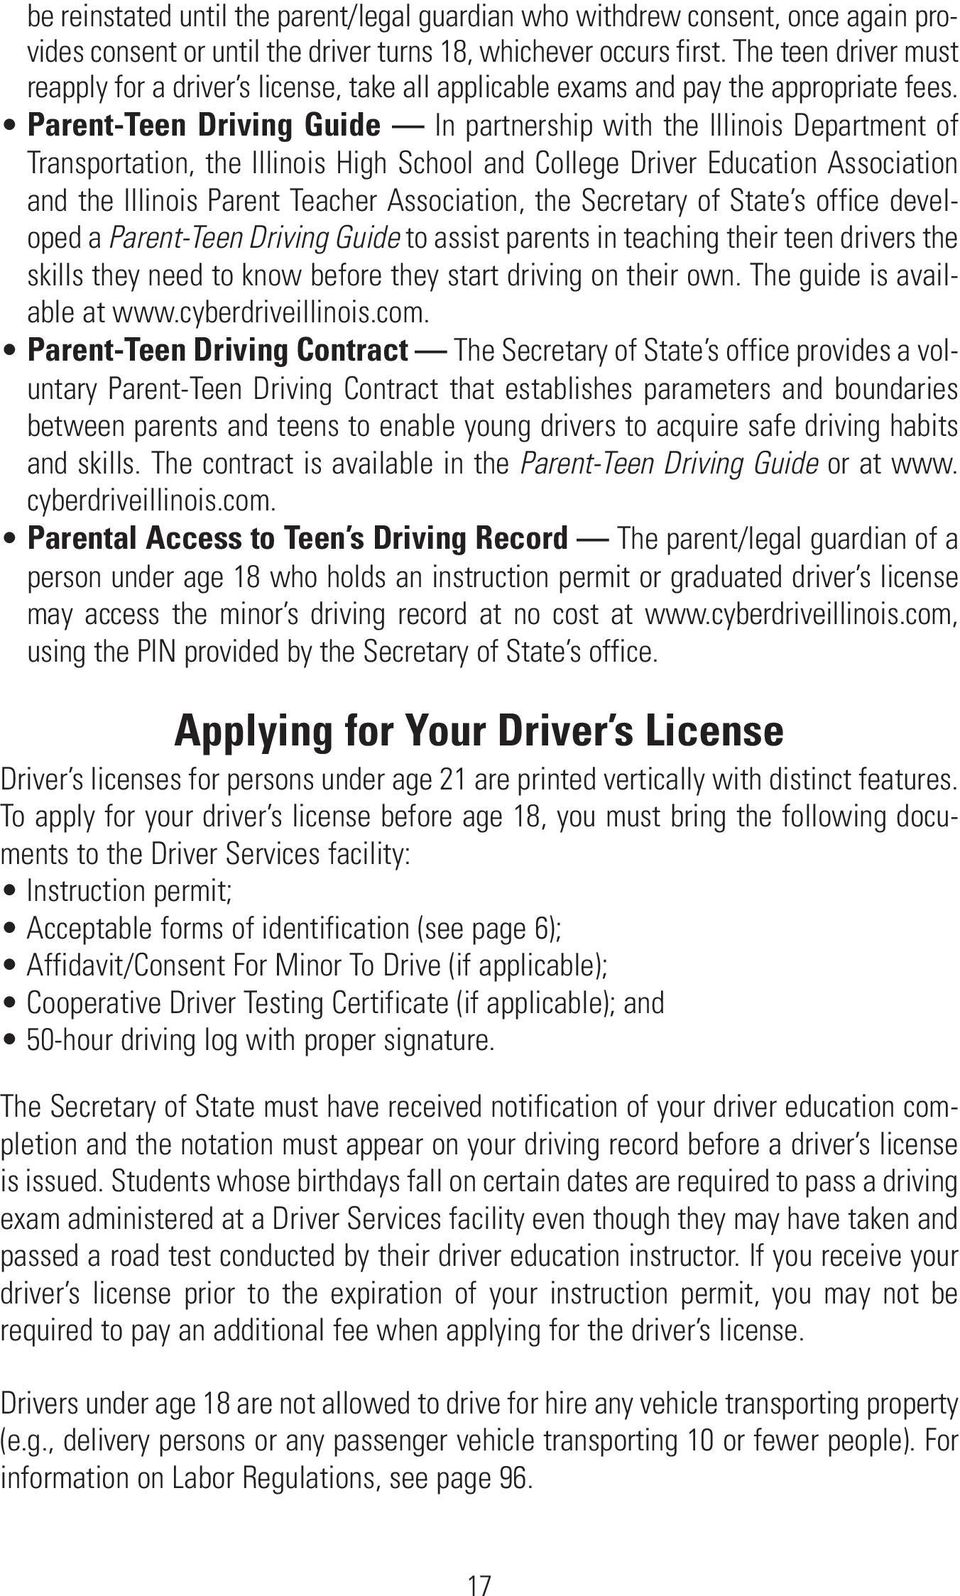 Parent-Teen Driving Guide In partnership with the Illinois Department of Transportation, the Illinois High School and College Driver Education Association and the Illinois Parent Teacher Association,